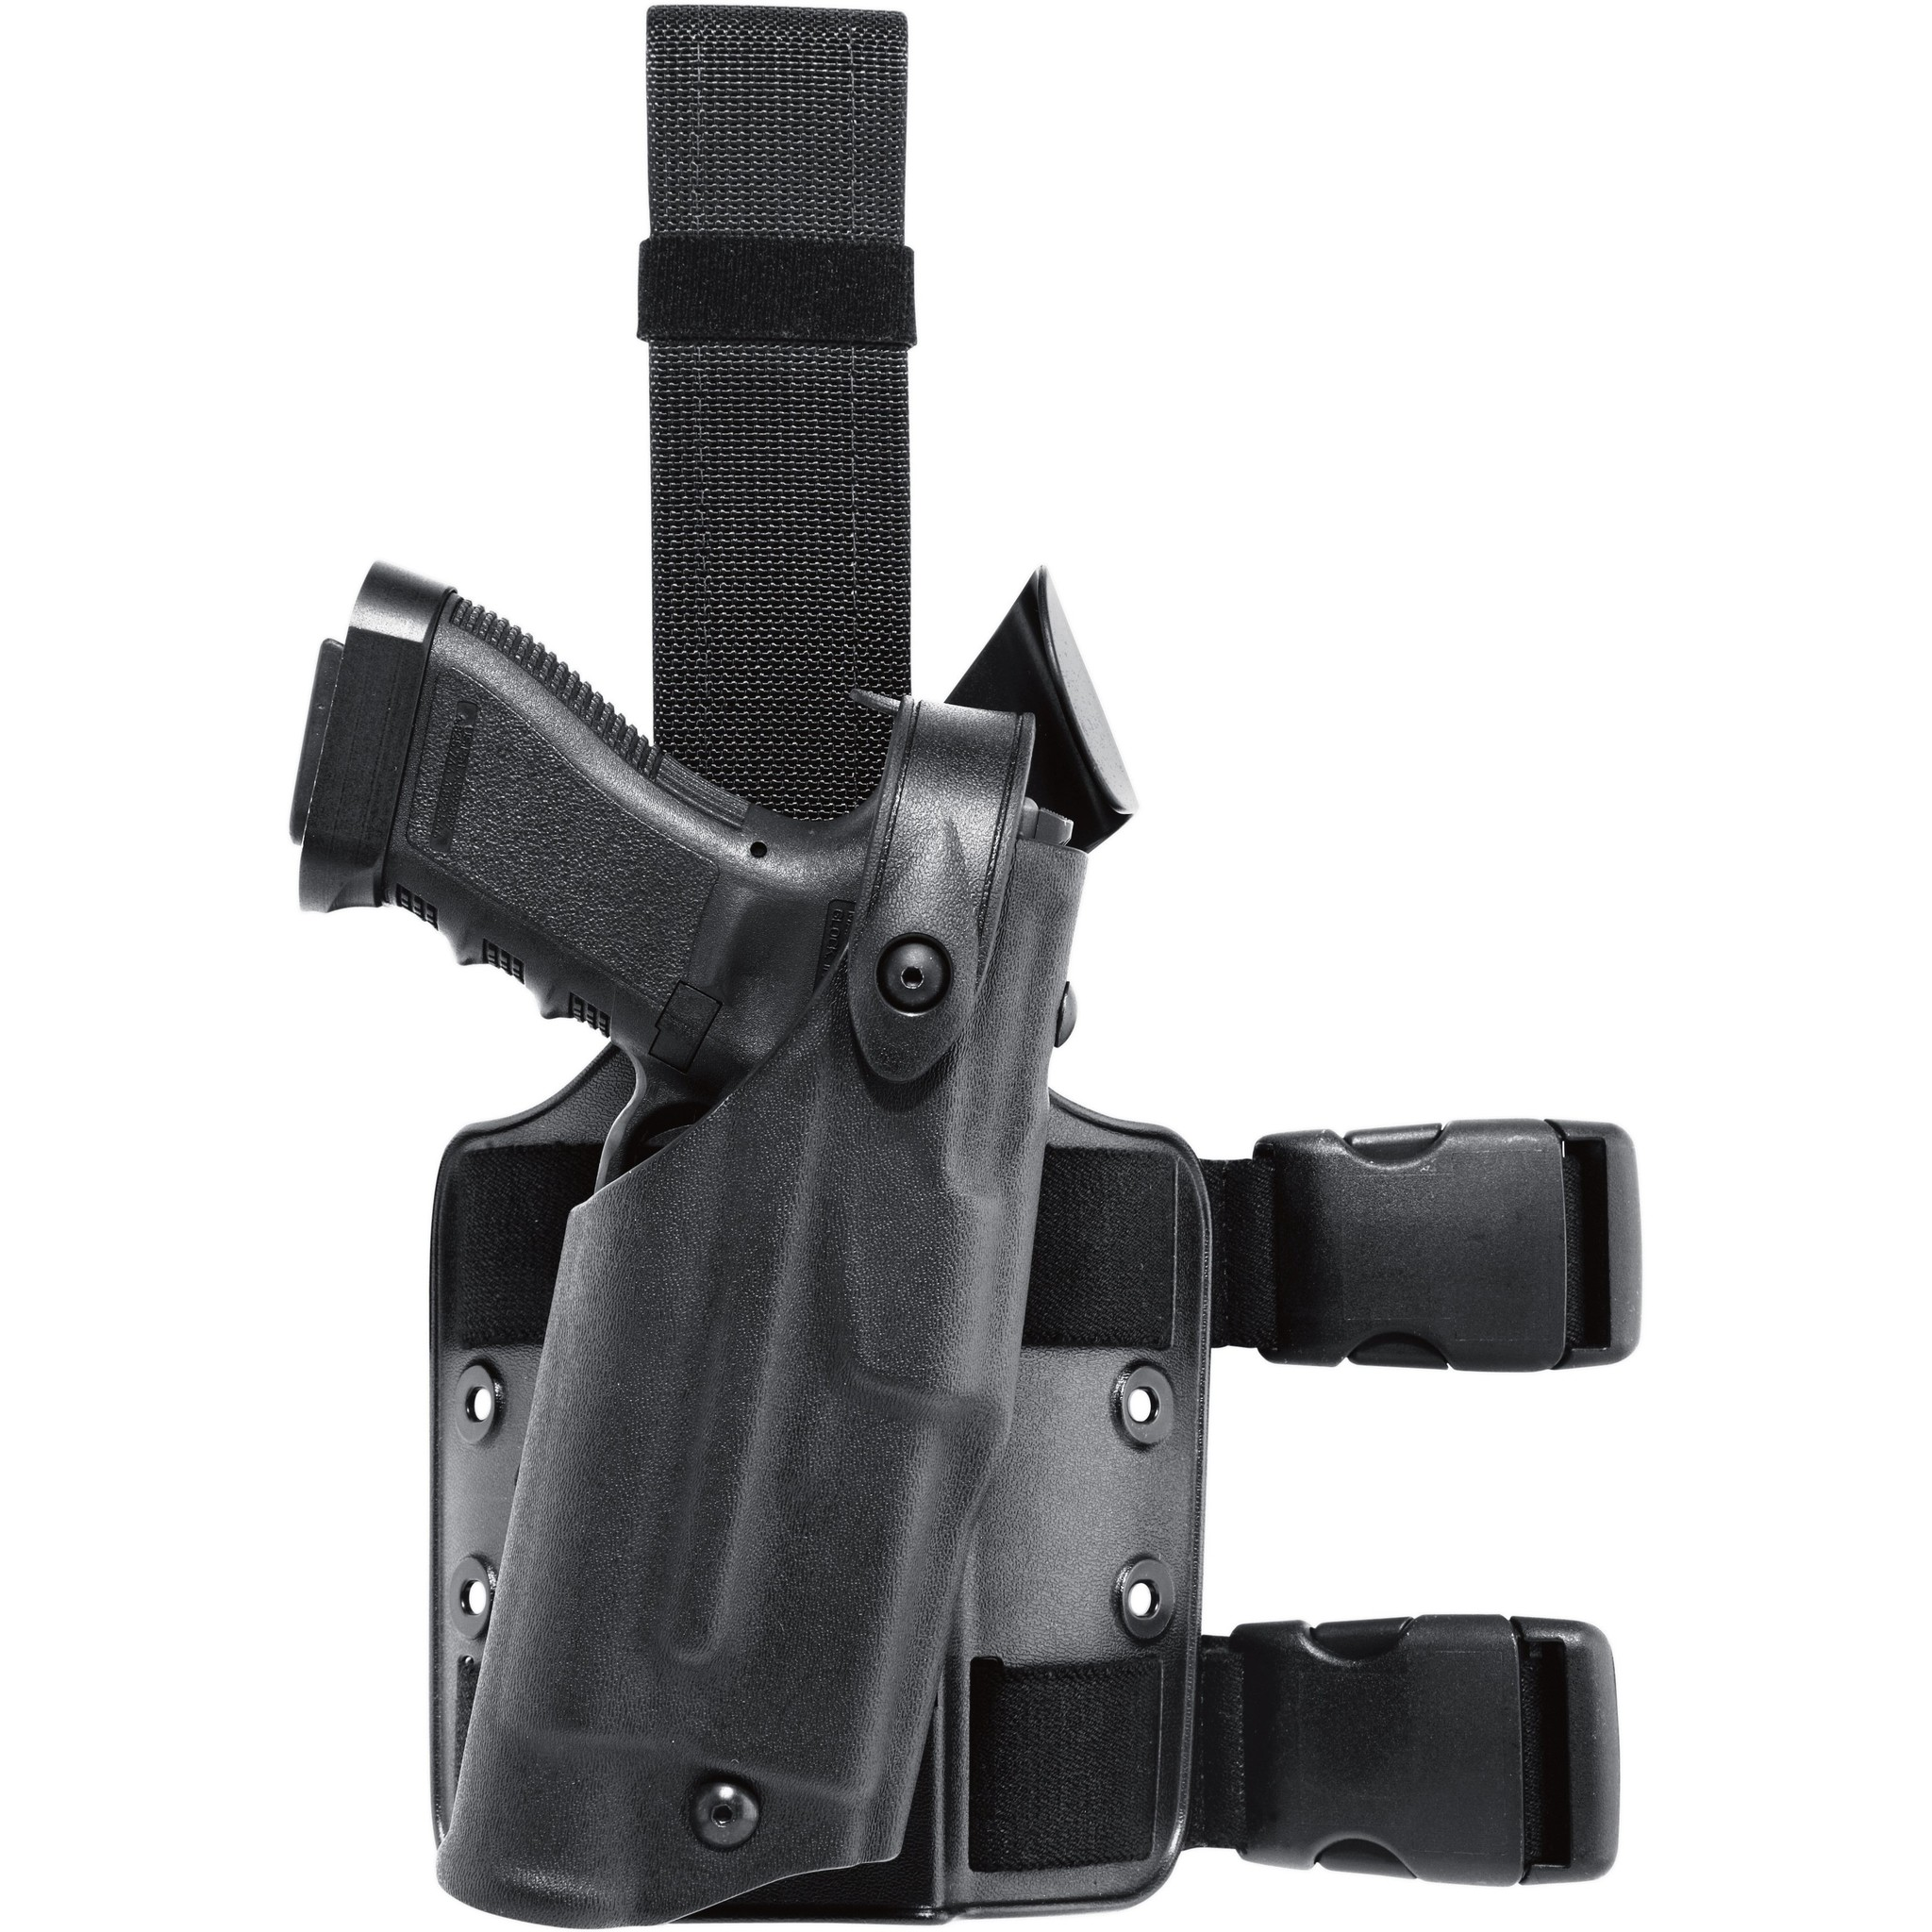 6304 ALS®/SLS Tactical holster